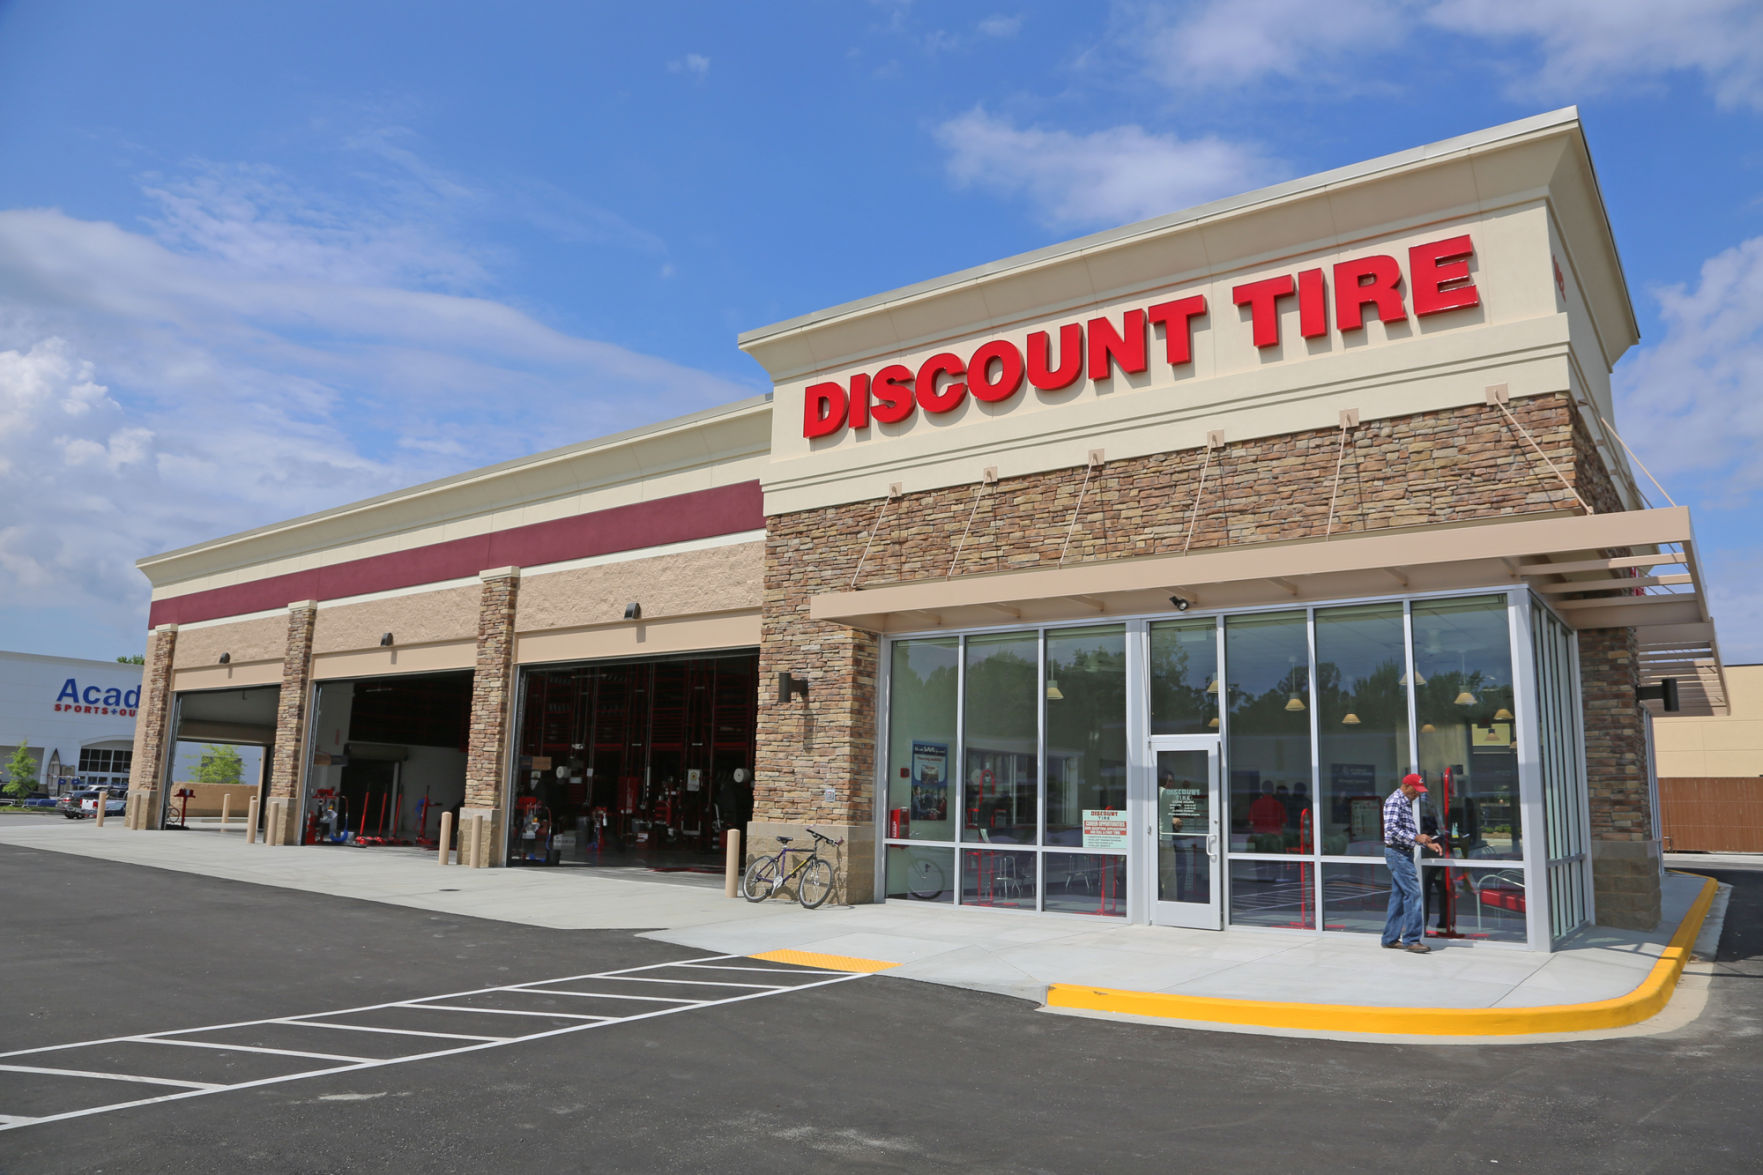 Discount Tire Closest To Me >> Vwvortex Com Who Else Is With Me To Boycott Discount Tire